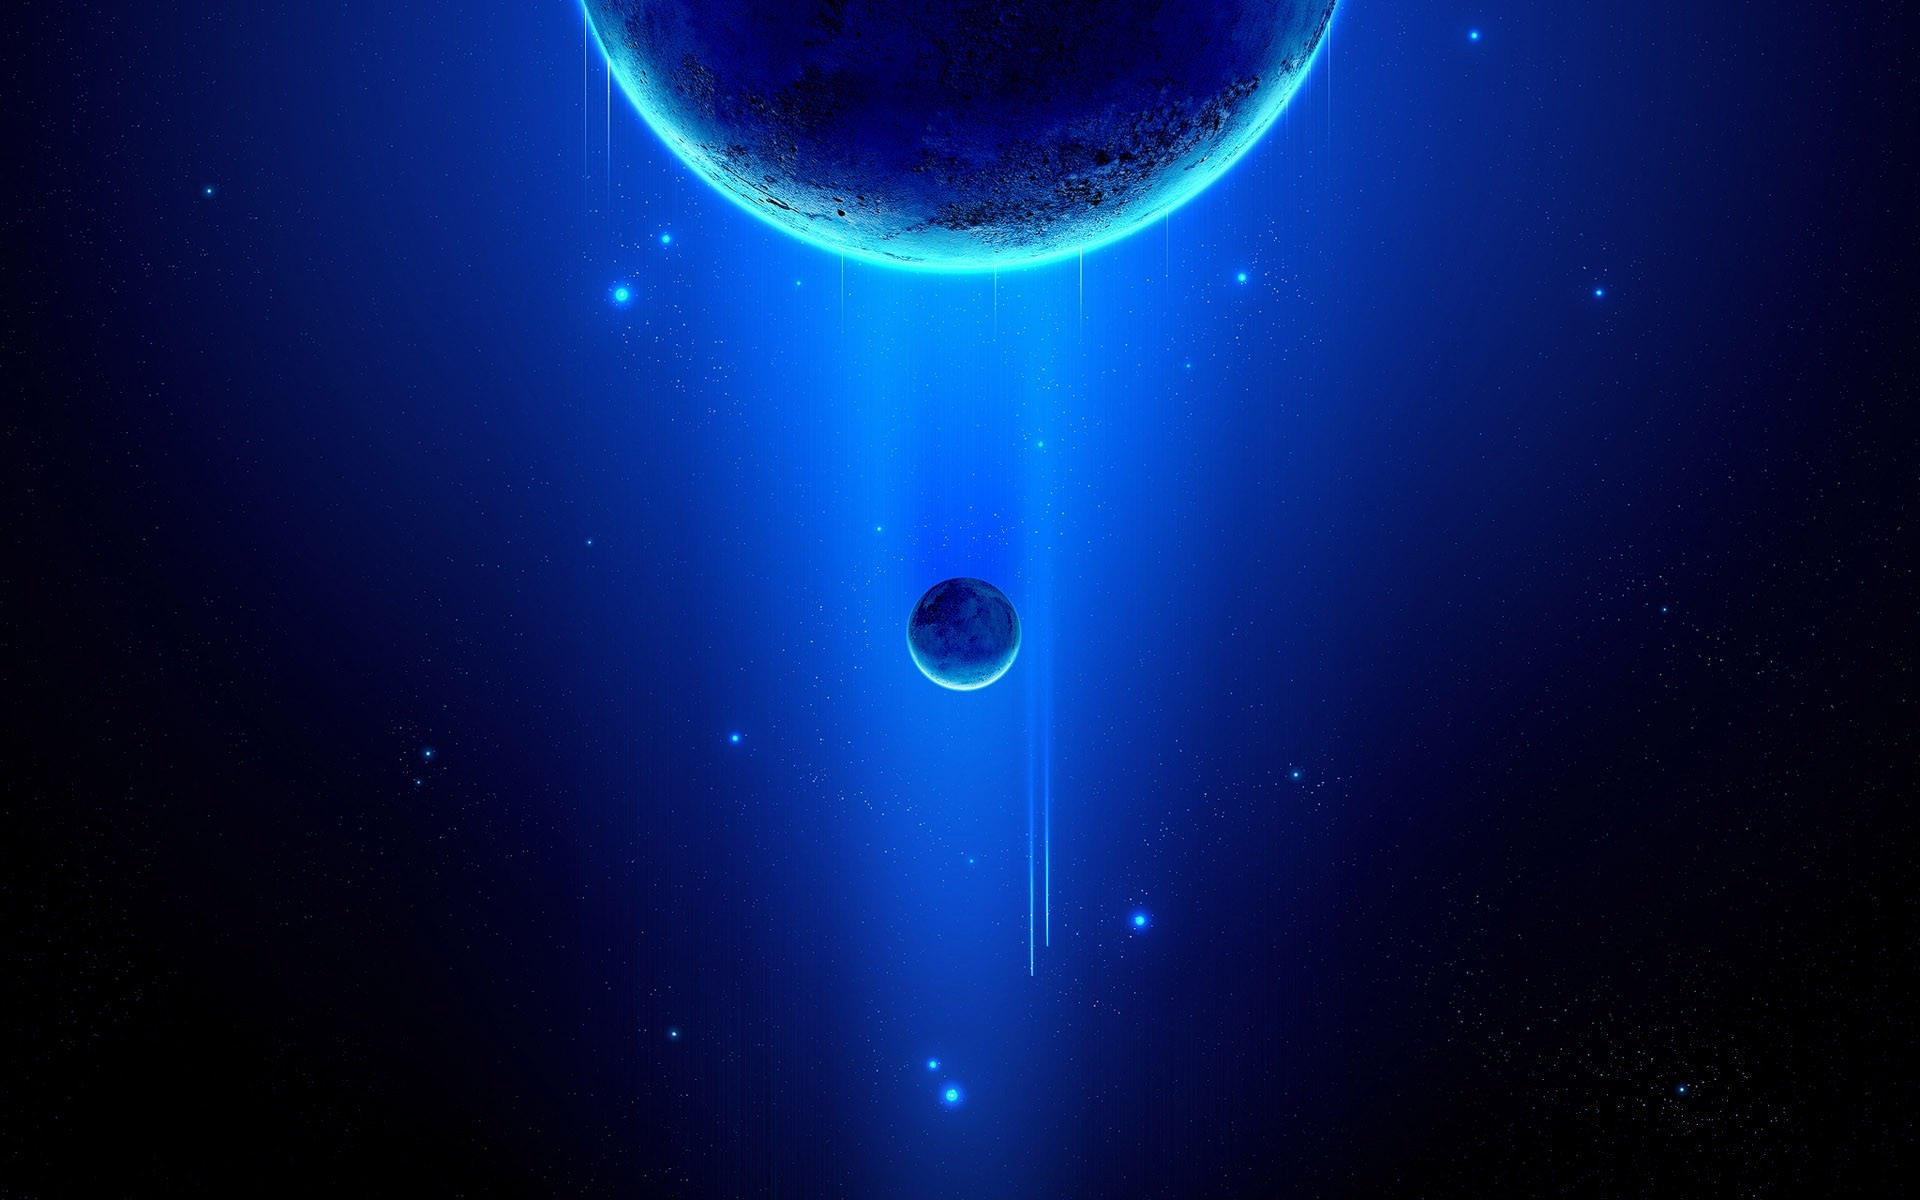 2001 a space odyssey iphone 6 wallpaper